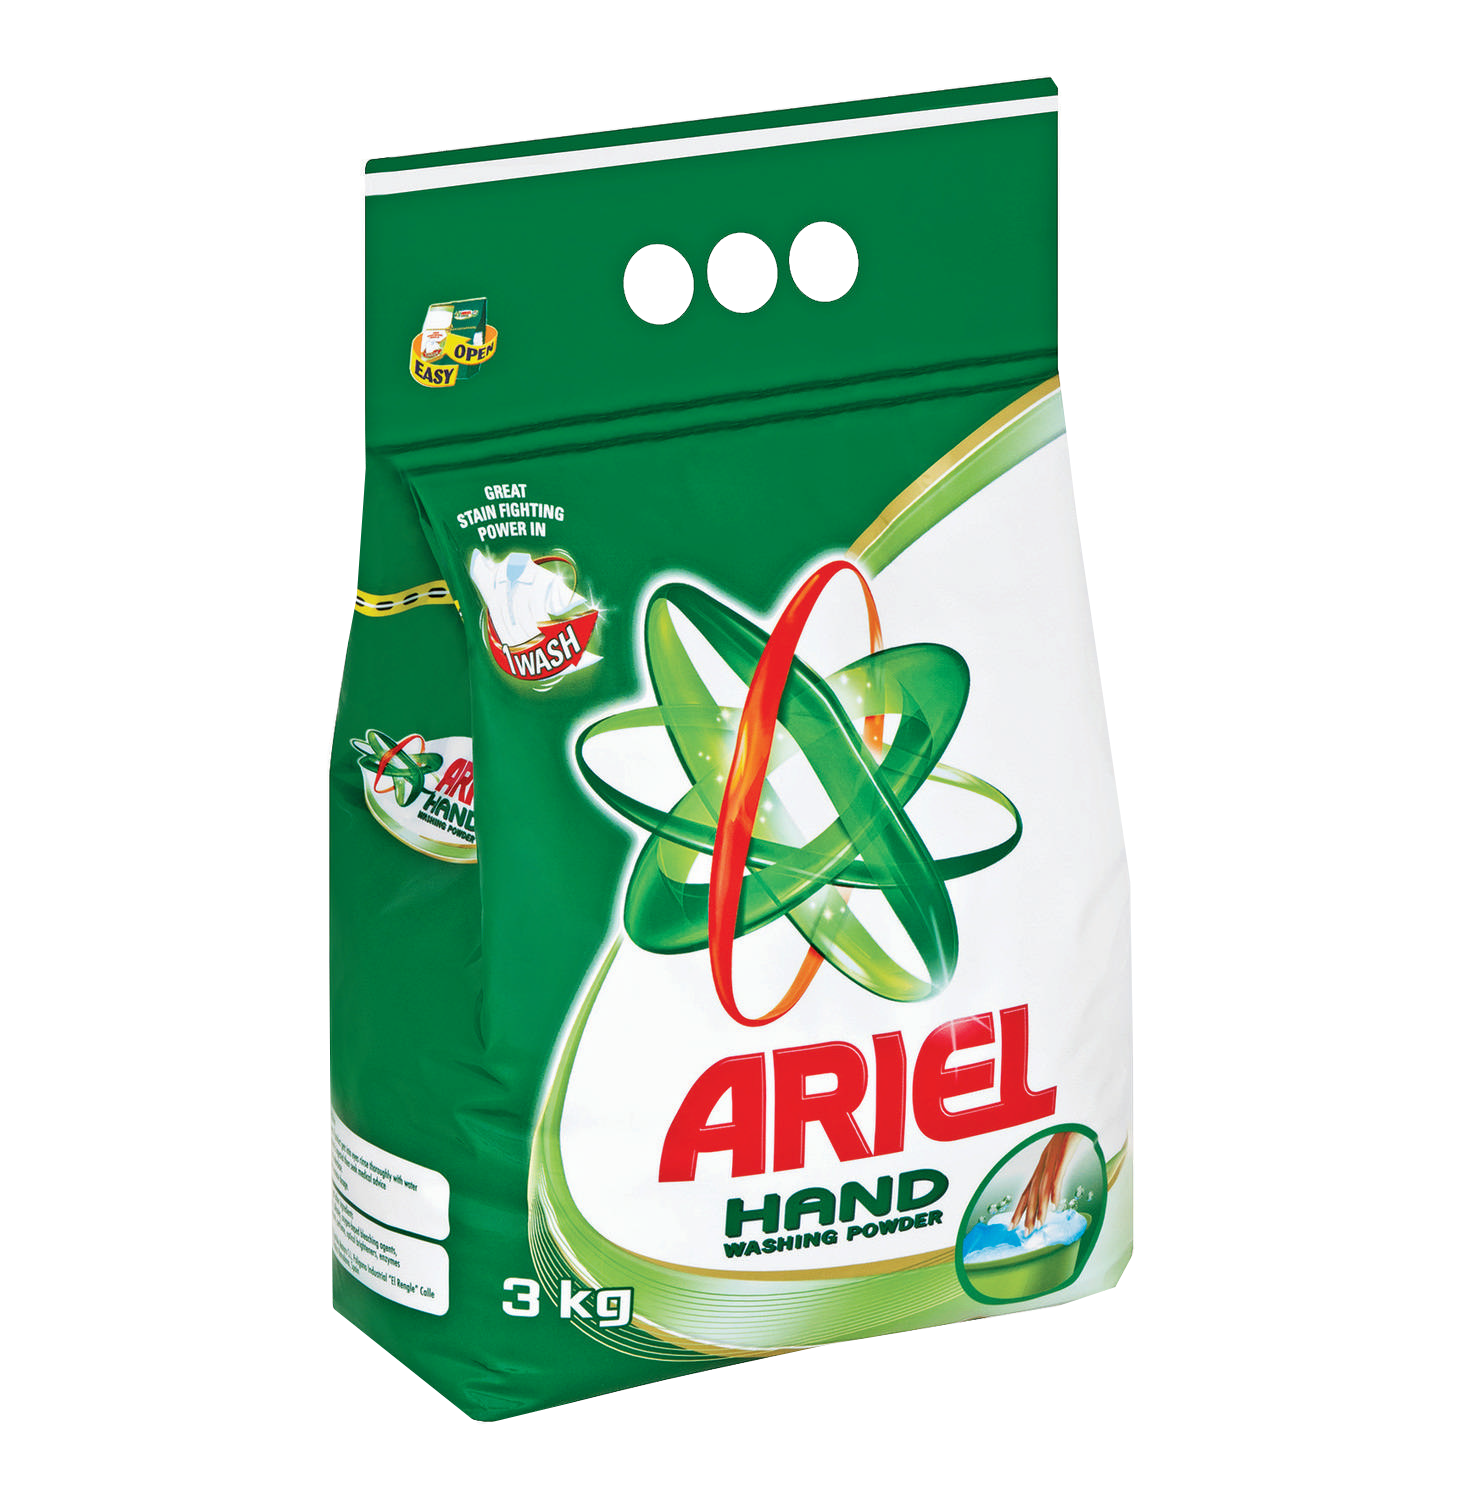 Washing powder PNG